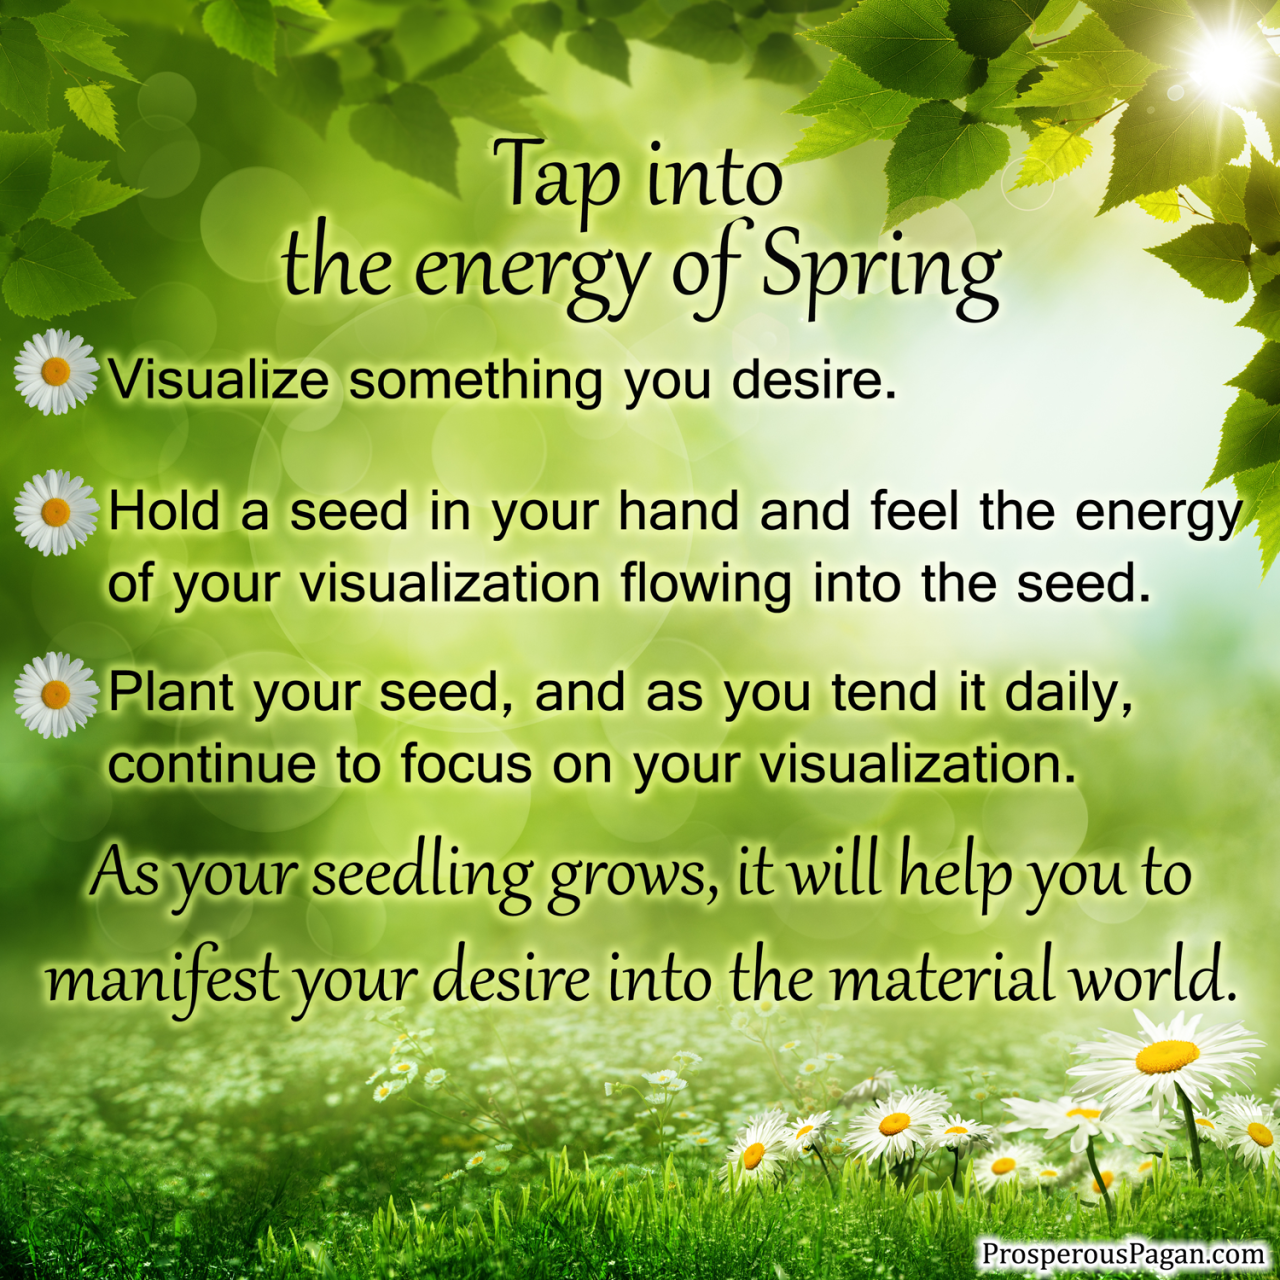 Tap into the energy of Spring.